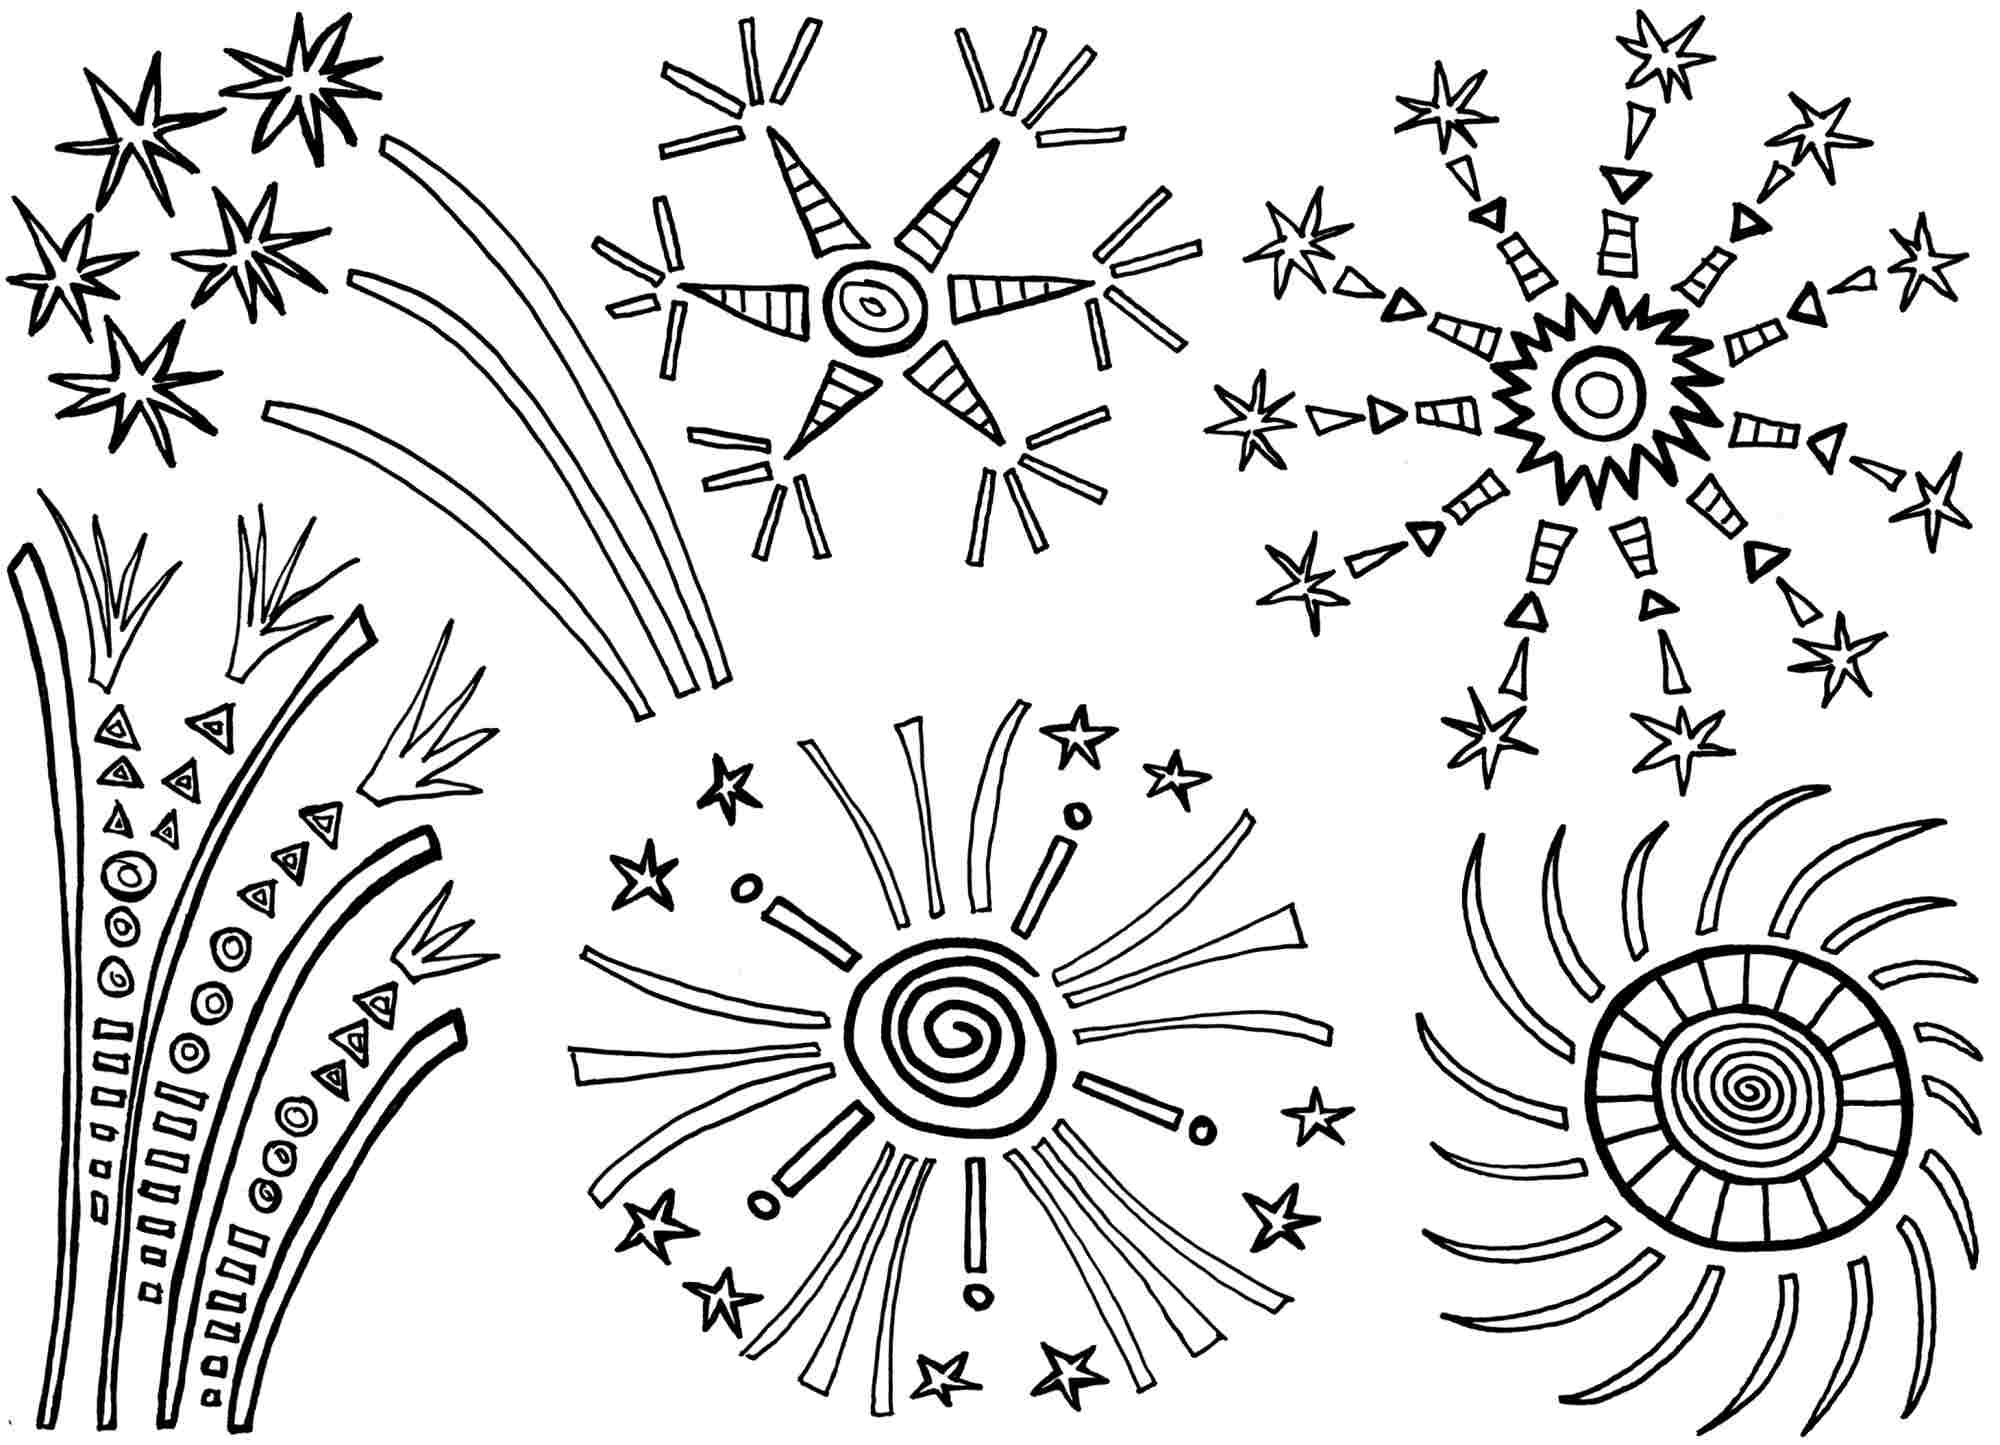 coloring page of fireworks fireworks coloring pages coloring pages for kids page fireworks coloring of